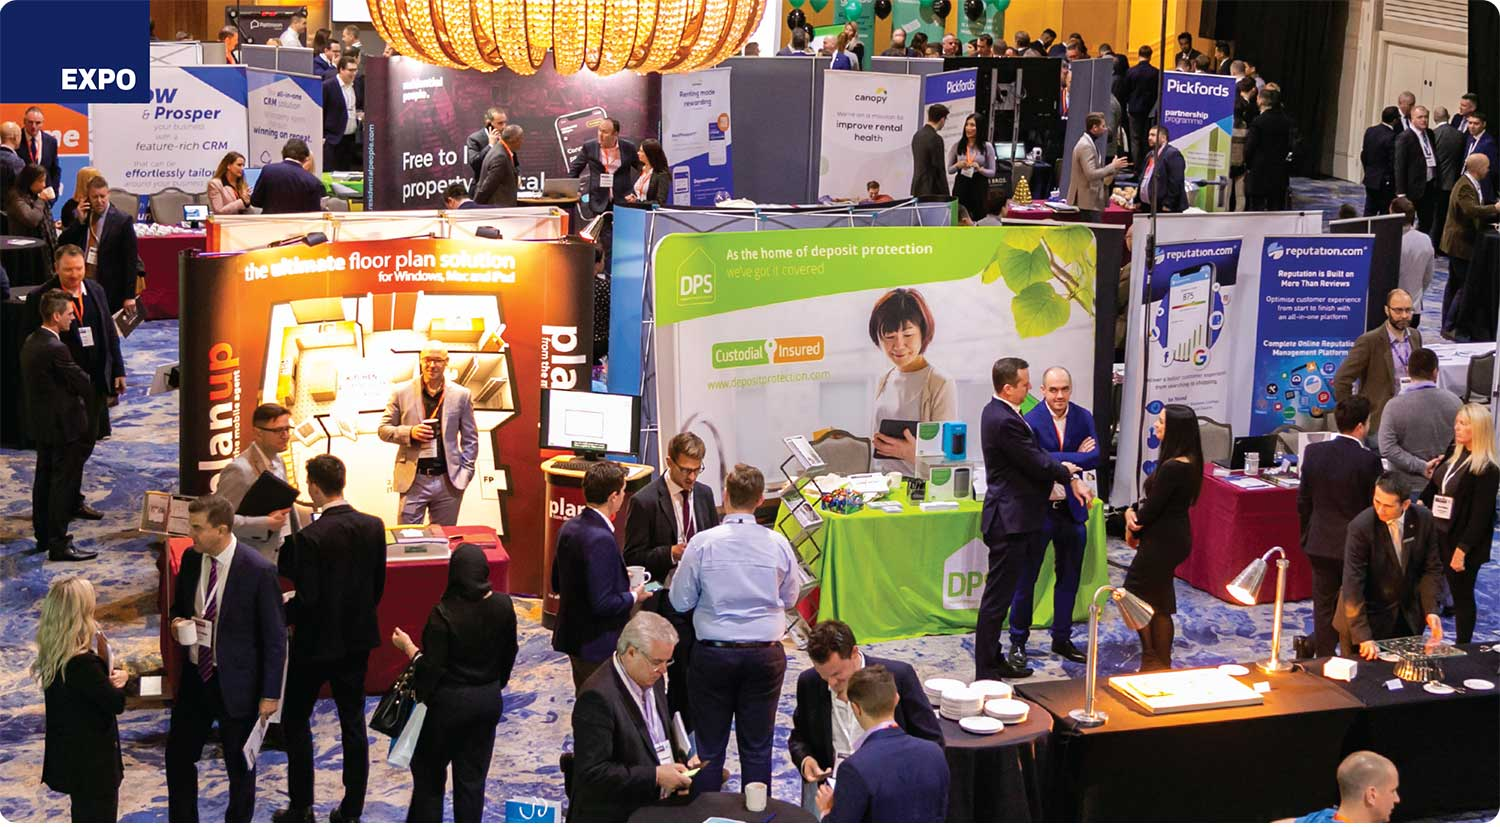 The Negotiator Conference for Estate Agents Letting Agents Expo image